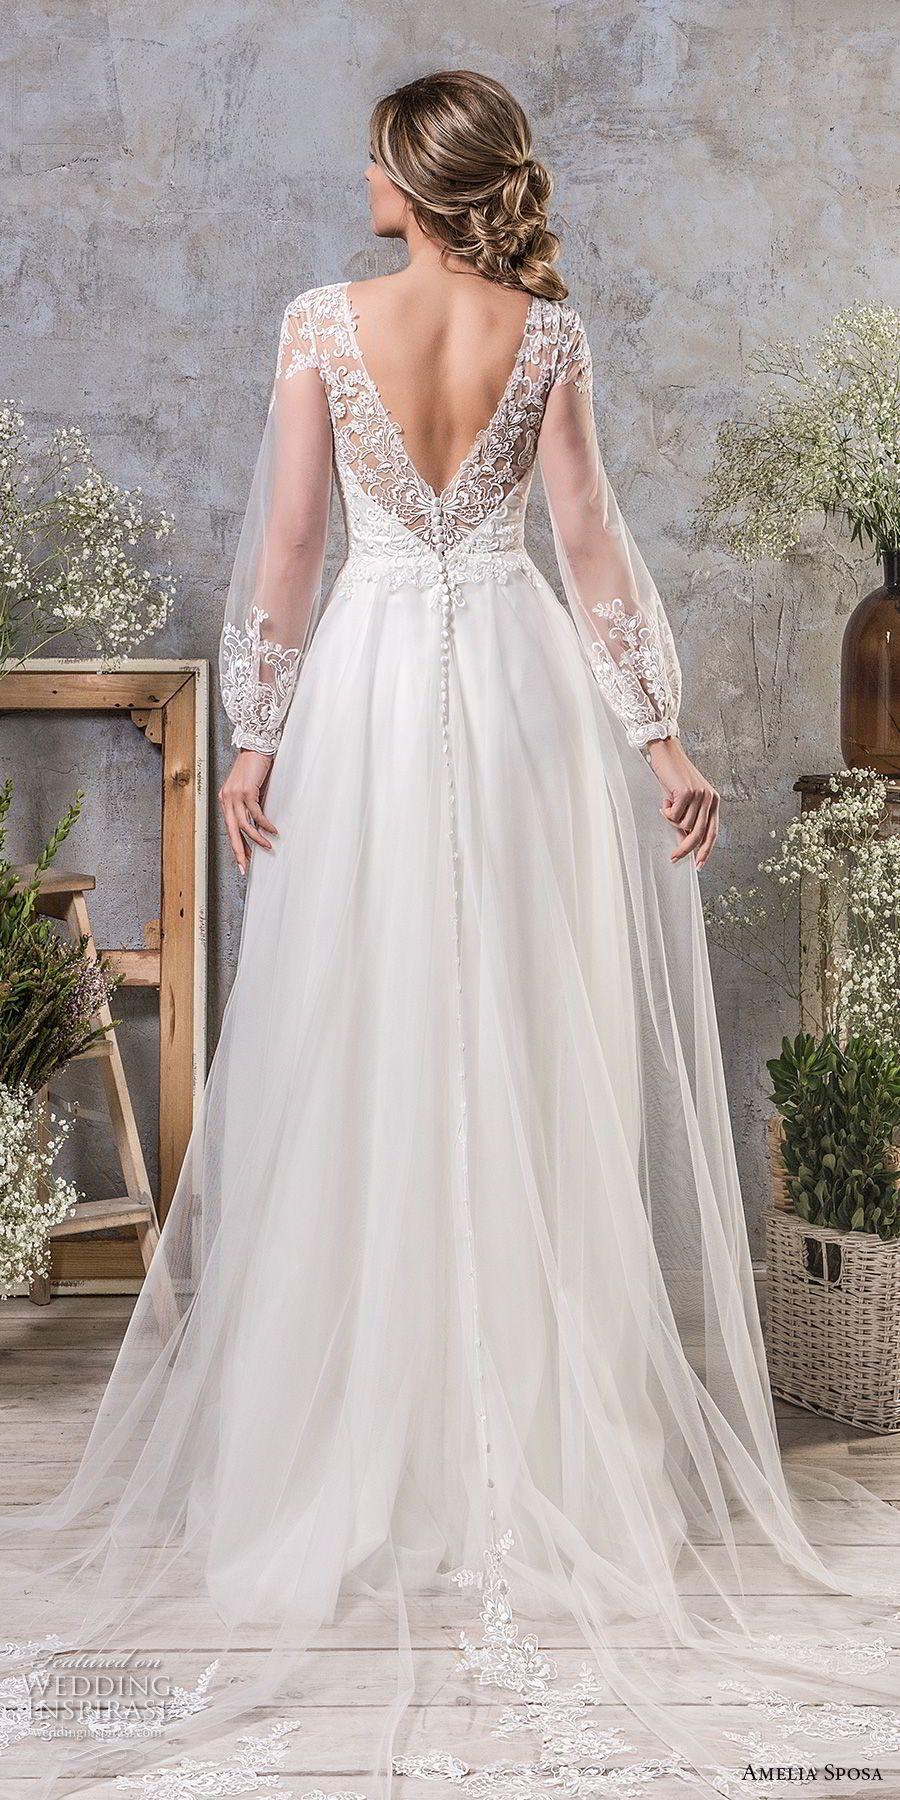 Amelia sposa fall bridal long bishop sleeves illusion jewel